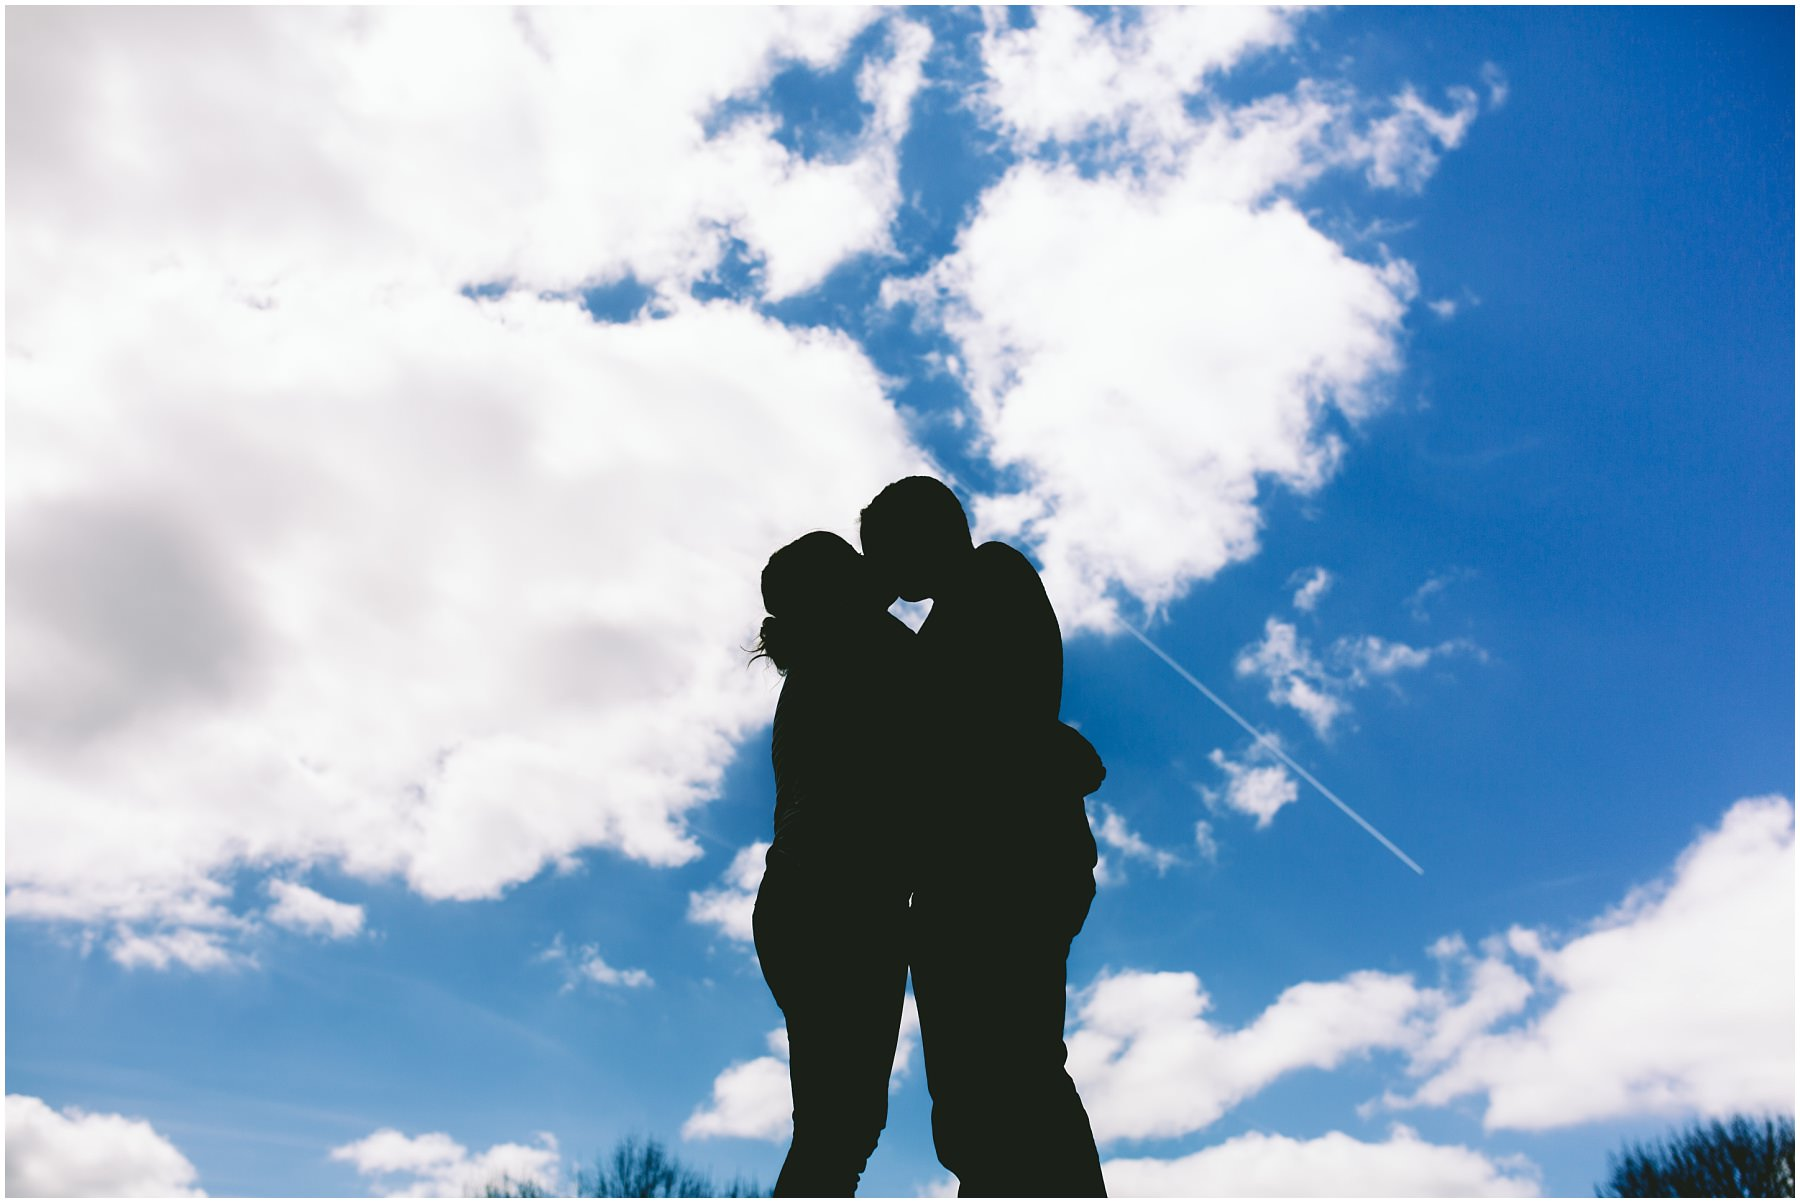 A couple silhouetted against a cloudy sky.